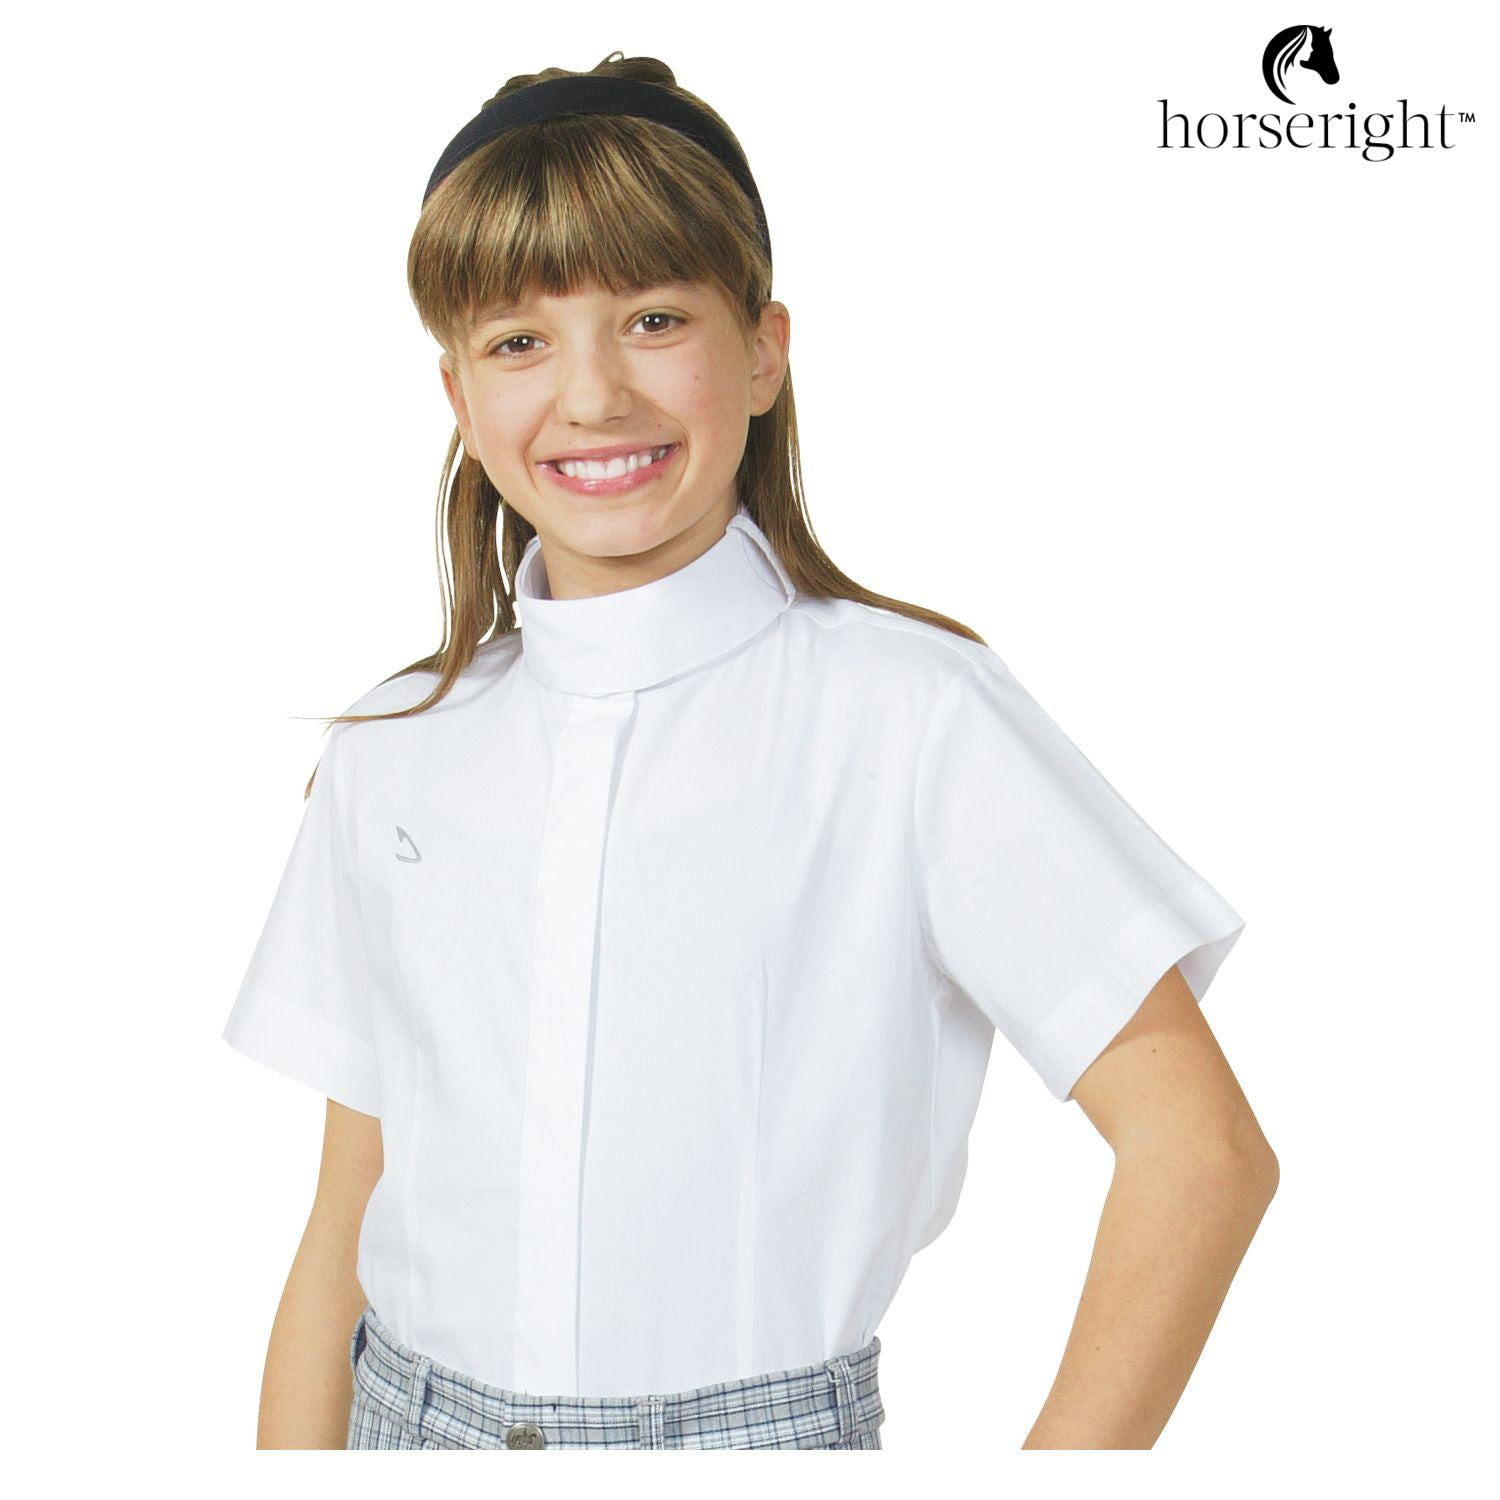 Black Forest Riding Blouse With Stand-Up Collar For Children